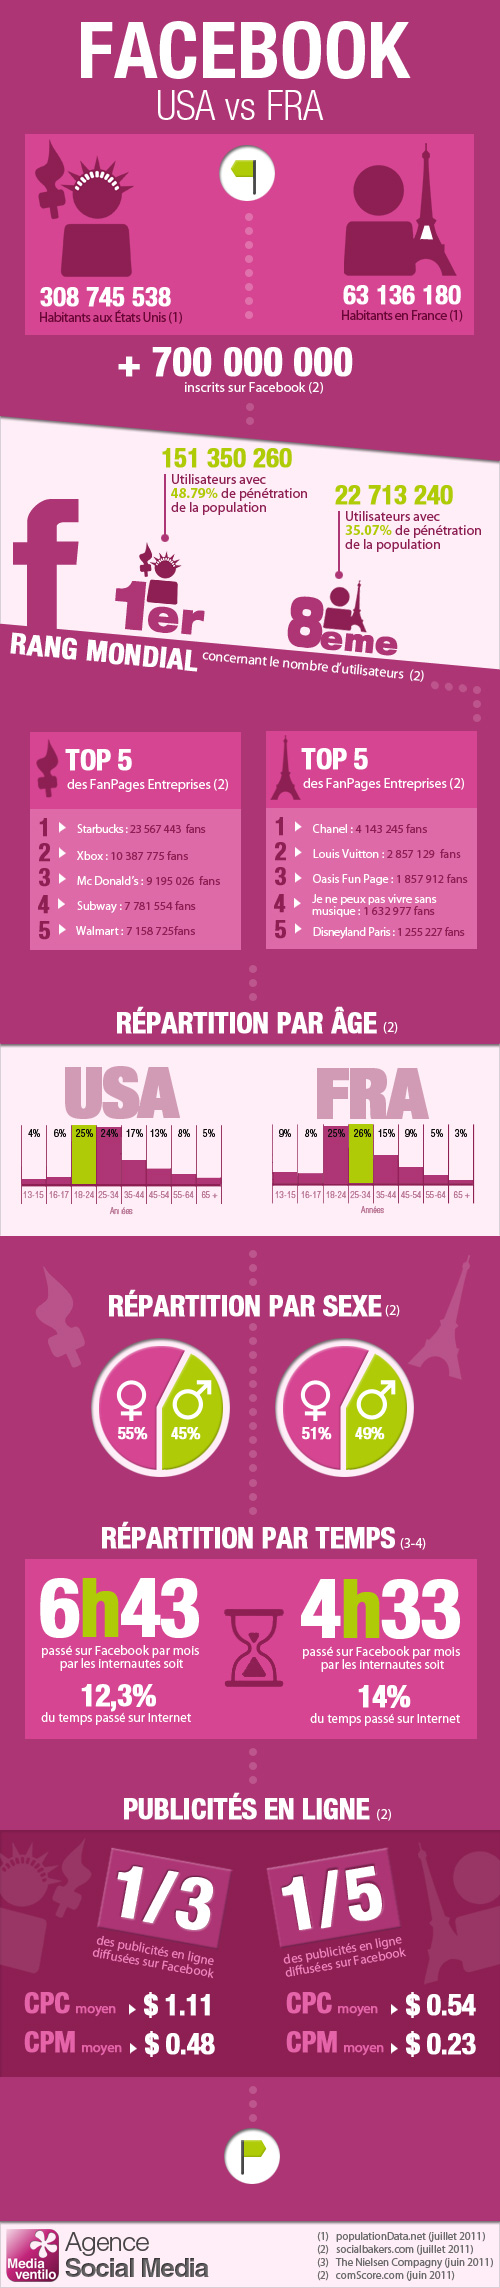 Facebook: USA vs France